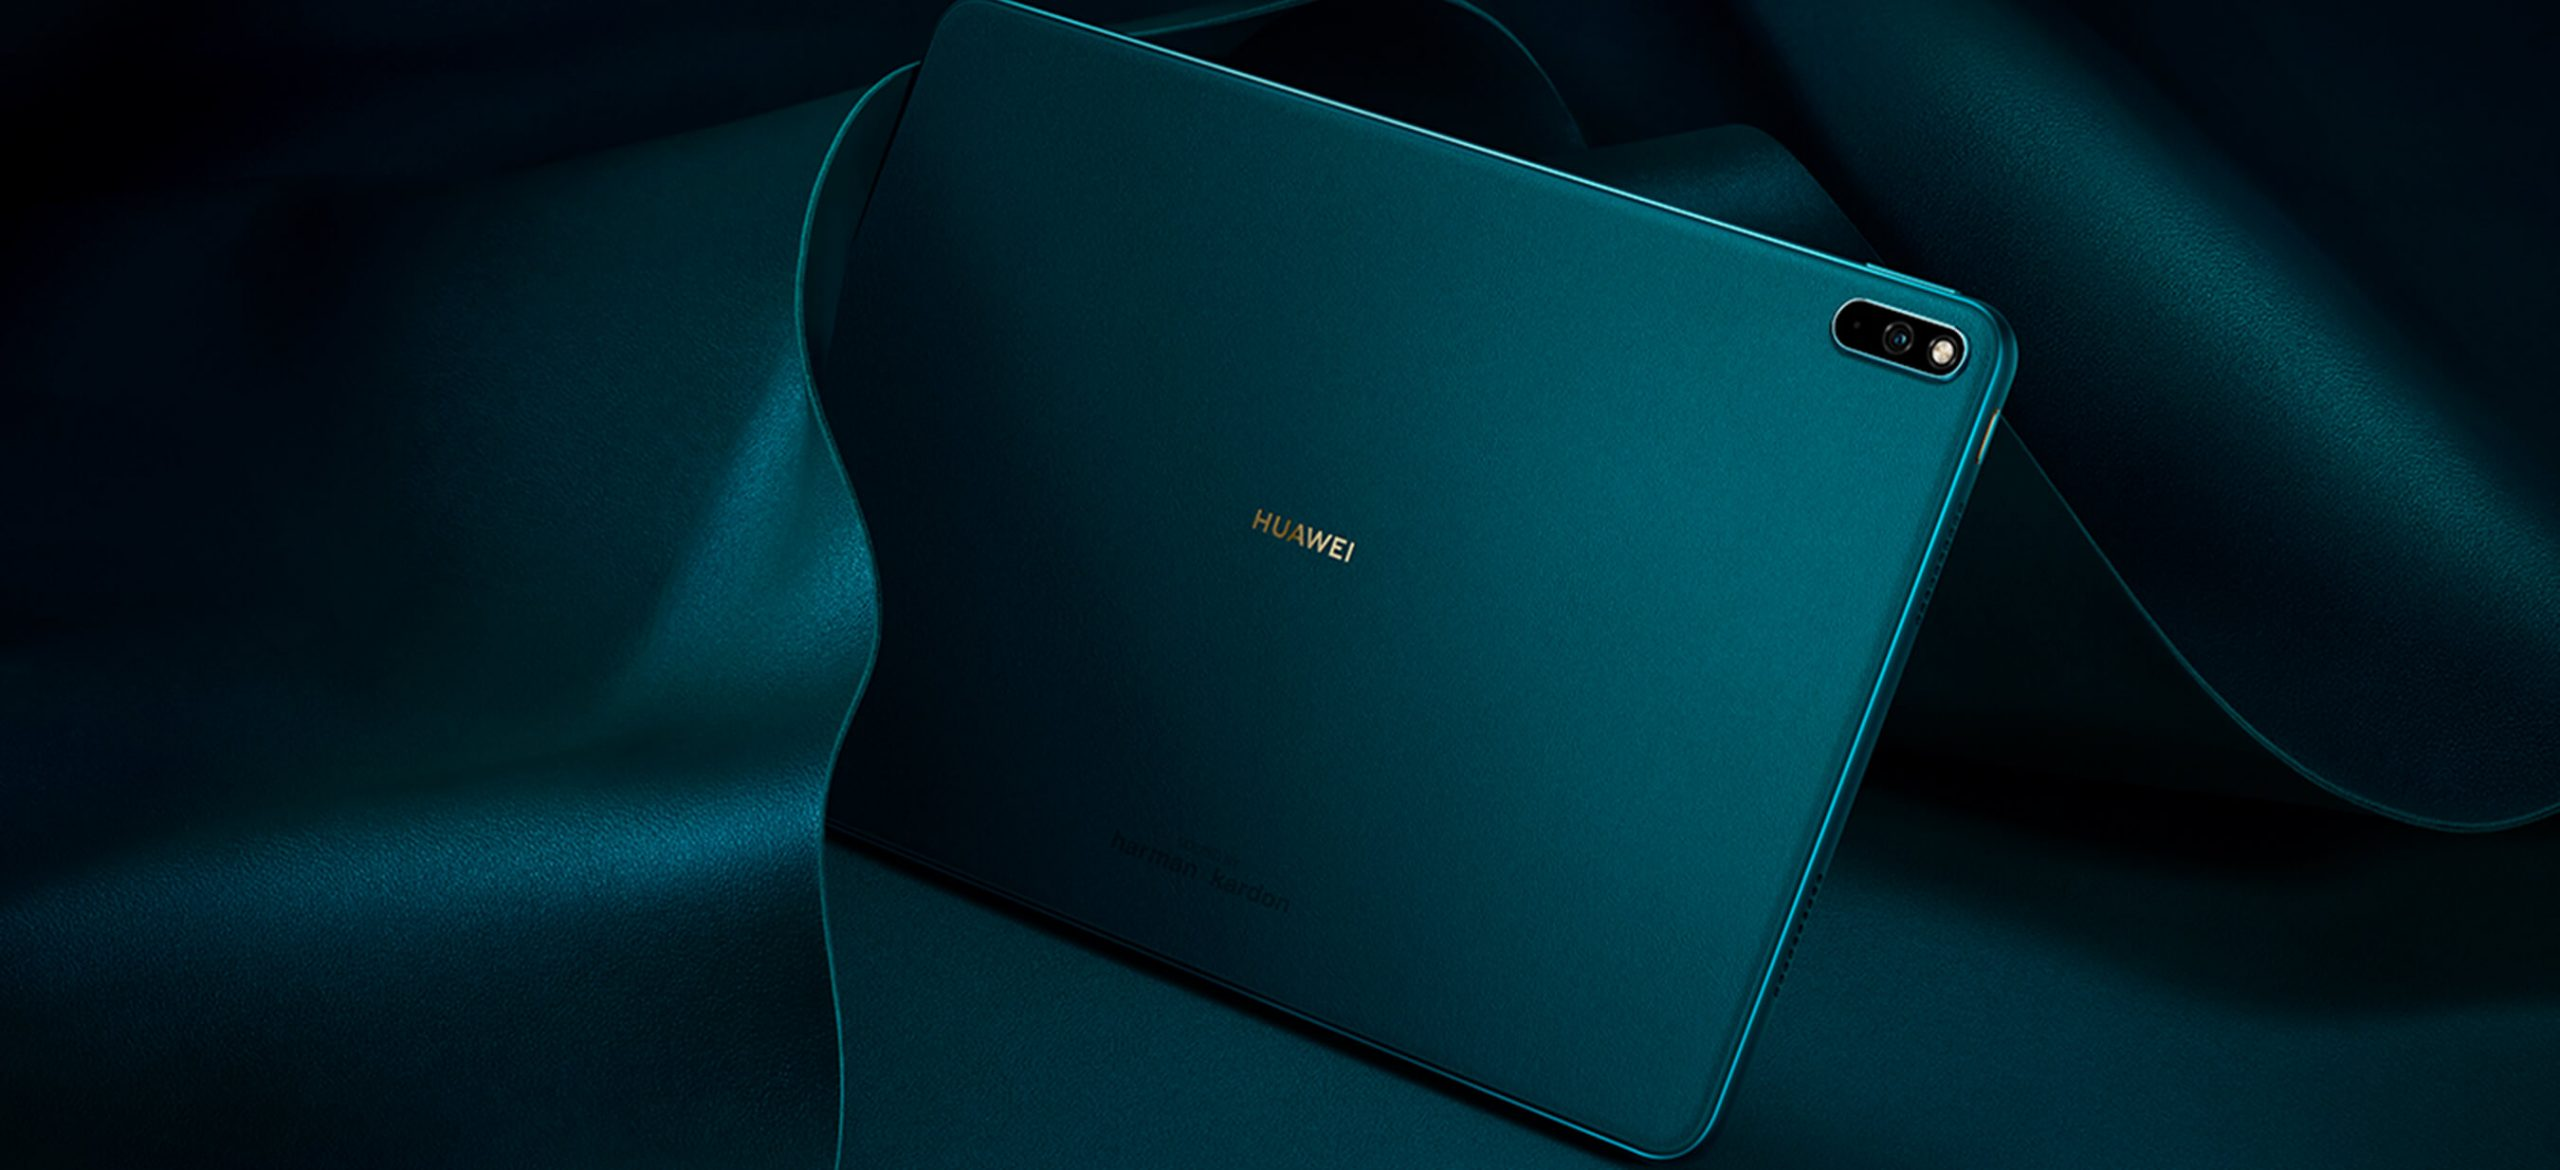 huawei matepad pro color green pc 4@2x scaled